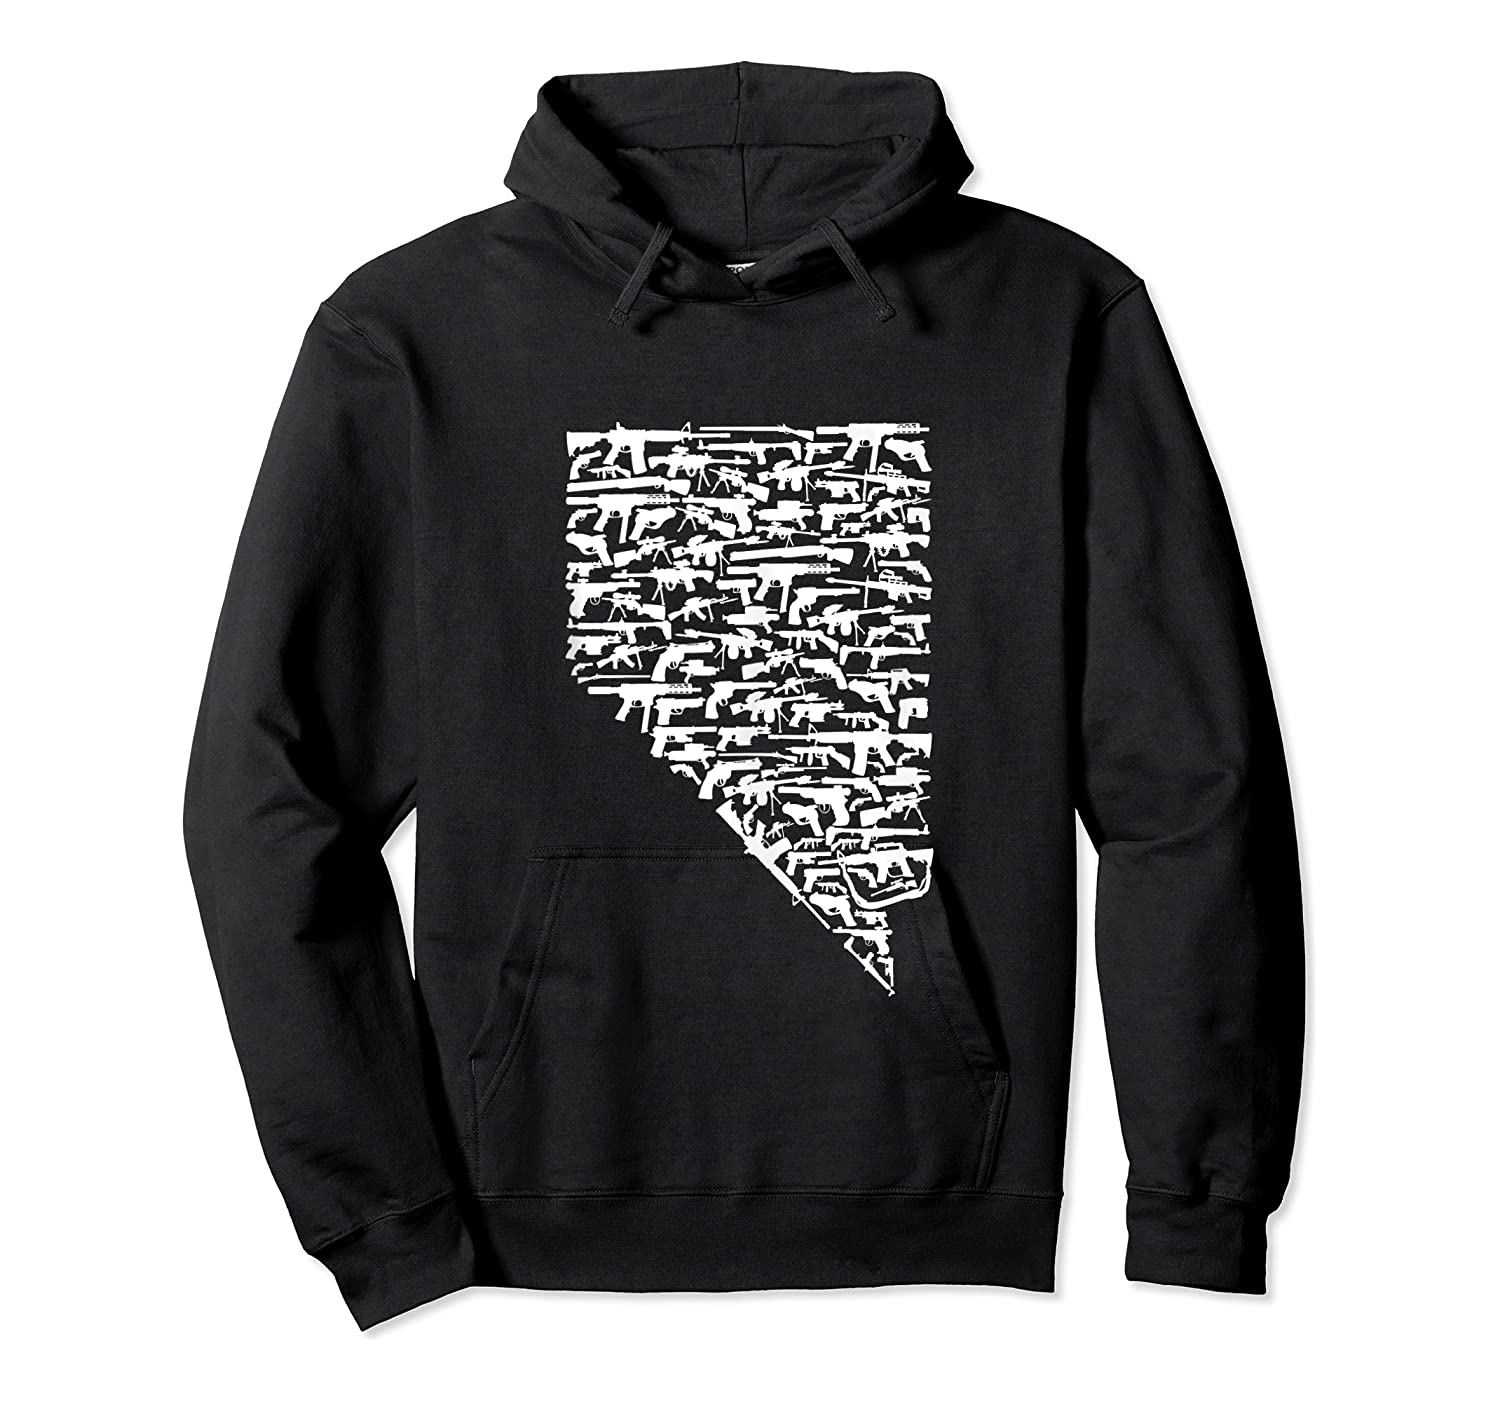 State Of Nevada Made Up Of Guns 2nd Adt Rights Shirts Unisex Pullover Hoodie